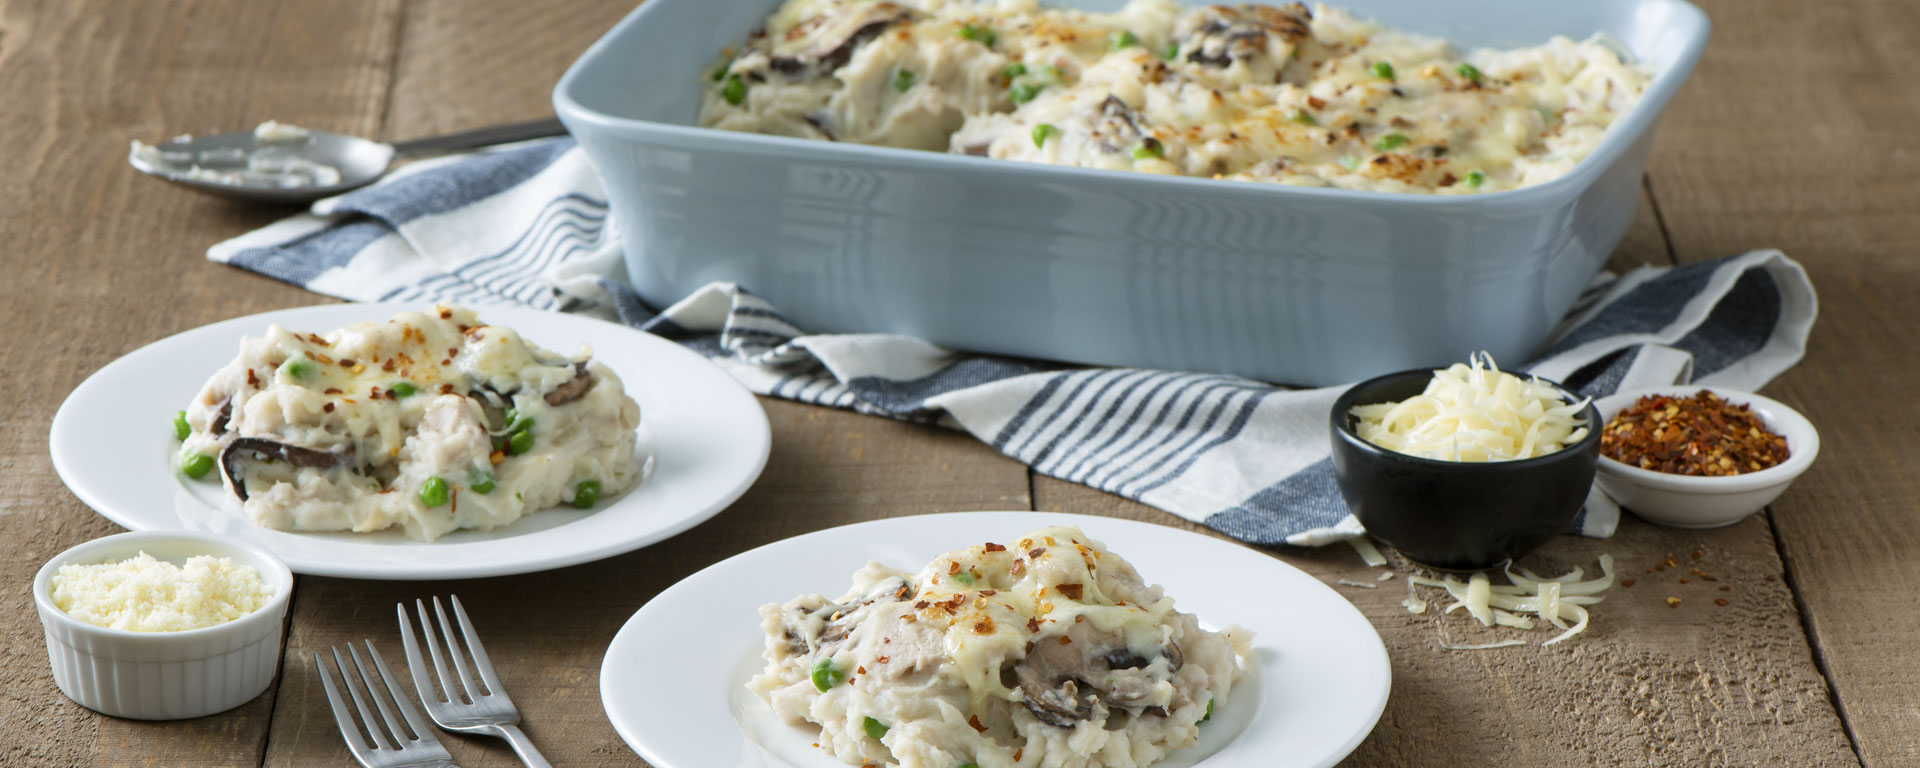 Photo for - Turkey Pesto Casserole